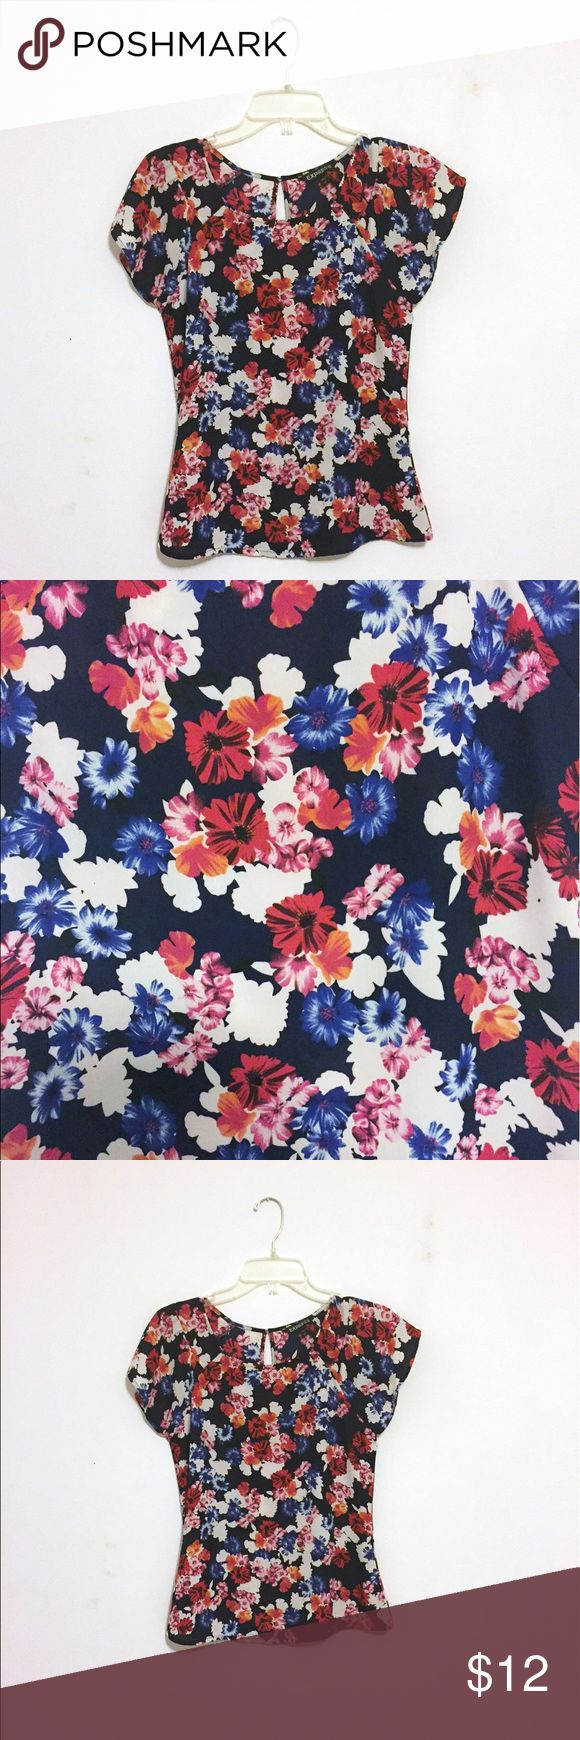 Express Flower blouse Adorable flower print blouse originally from Express. Perfect with skirts or jeans. Tops Blouses